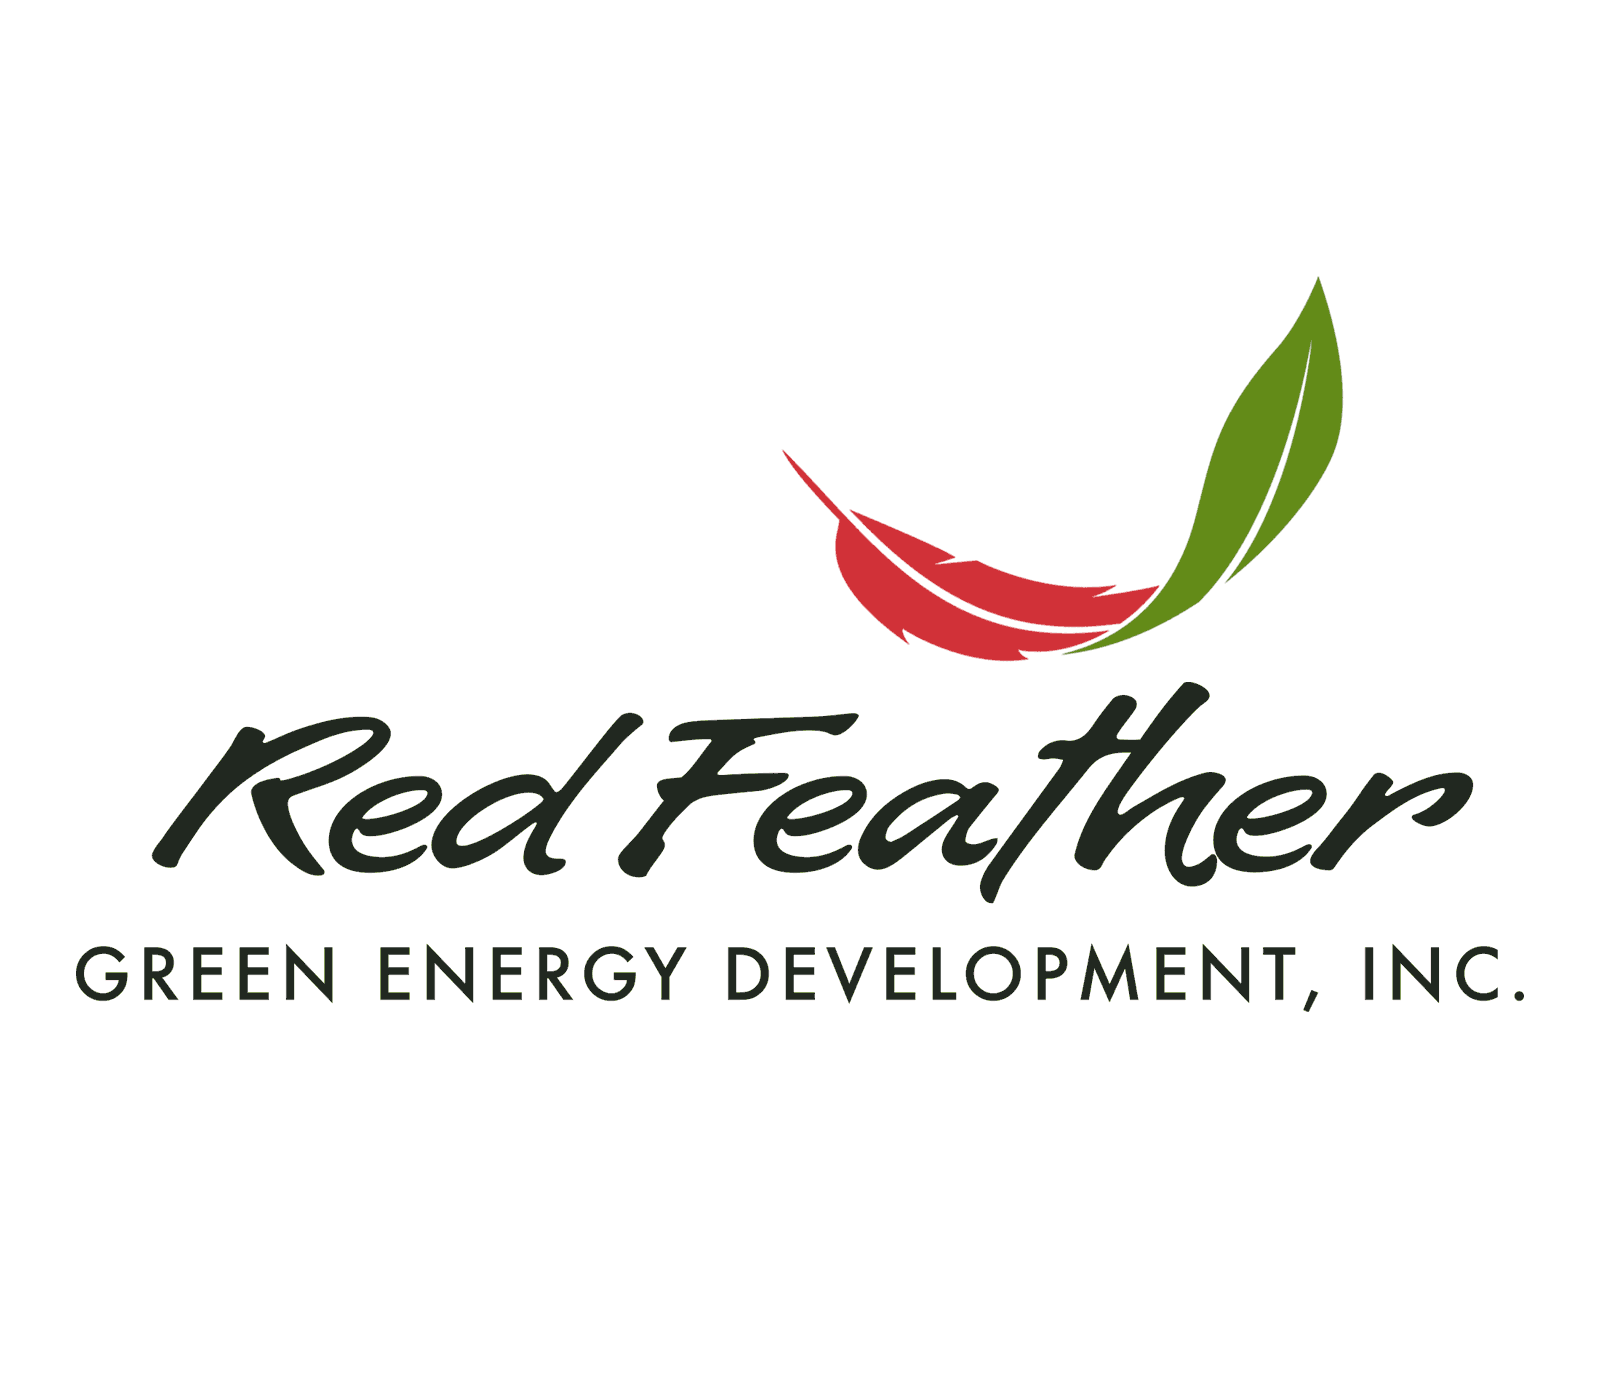 feather logo for green energy company